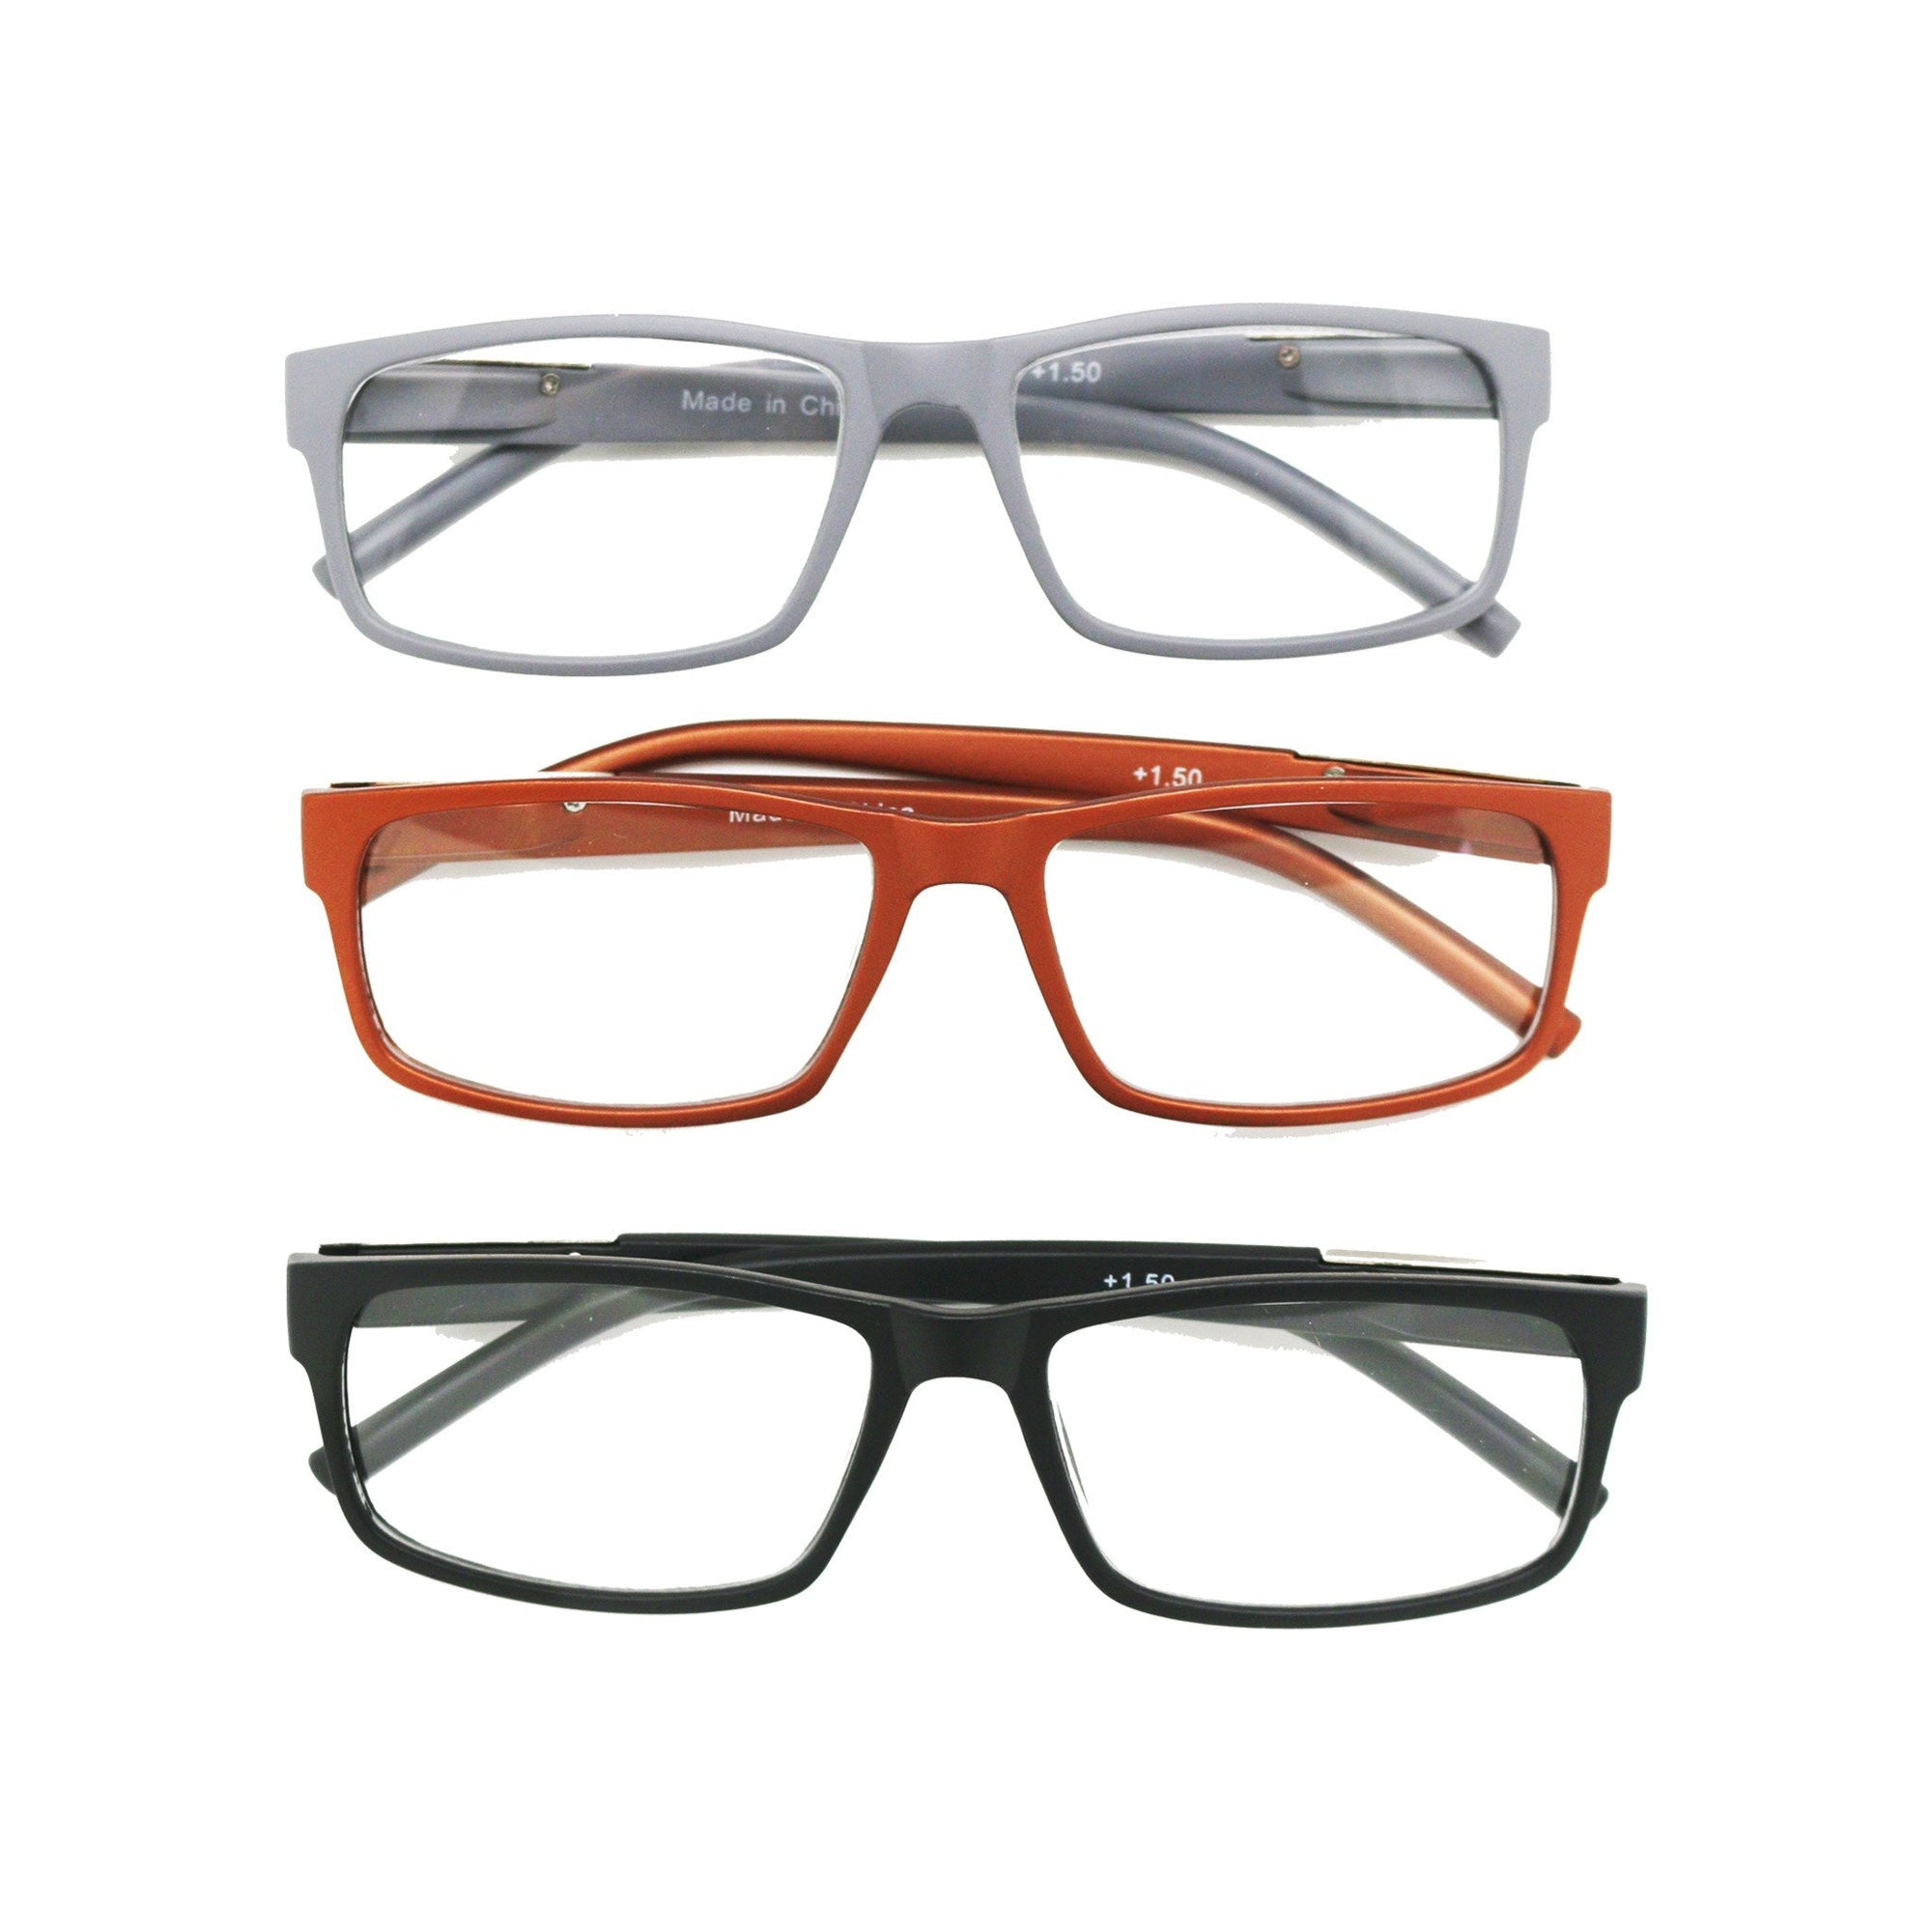 Casa Mens Reading Glasses +3.0 Magnification 3pk